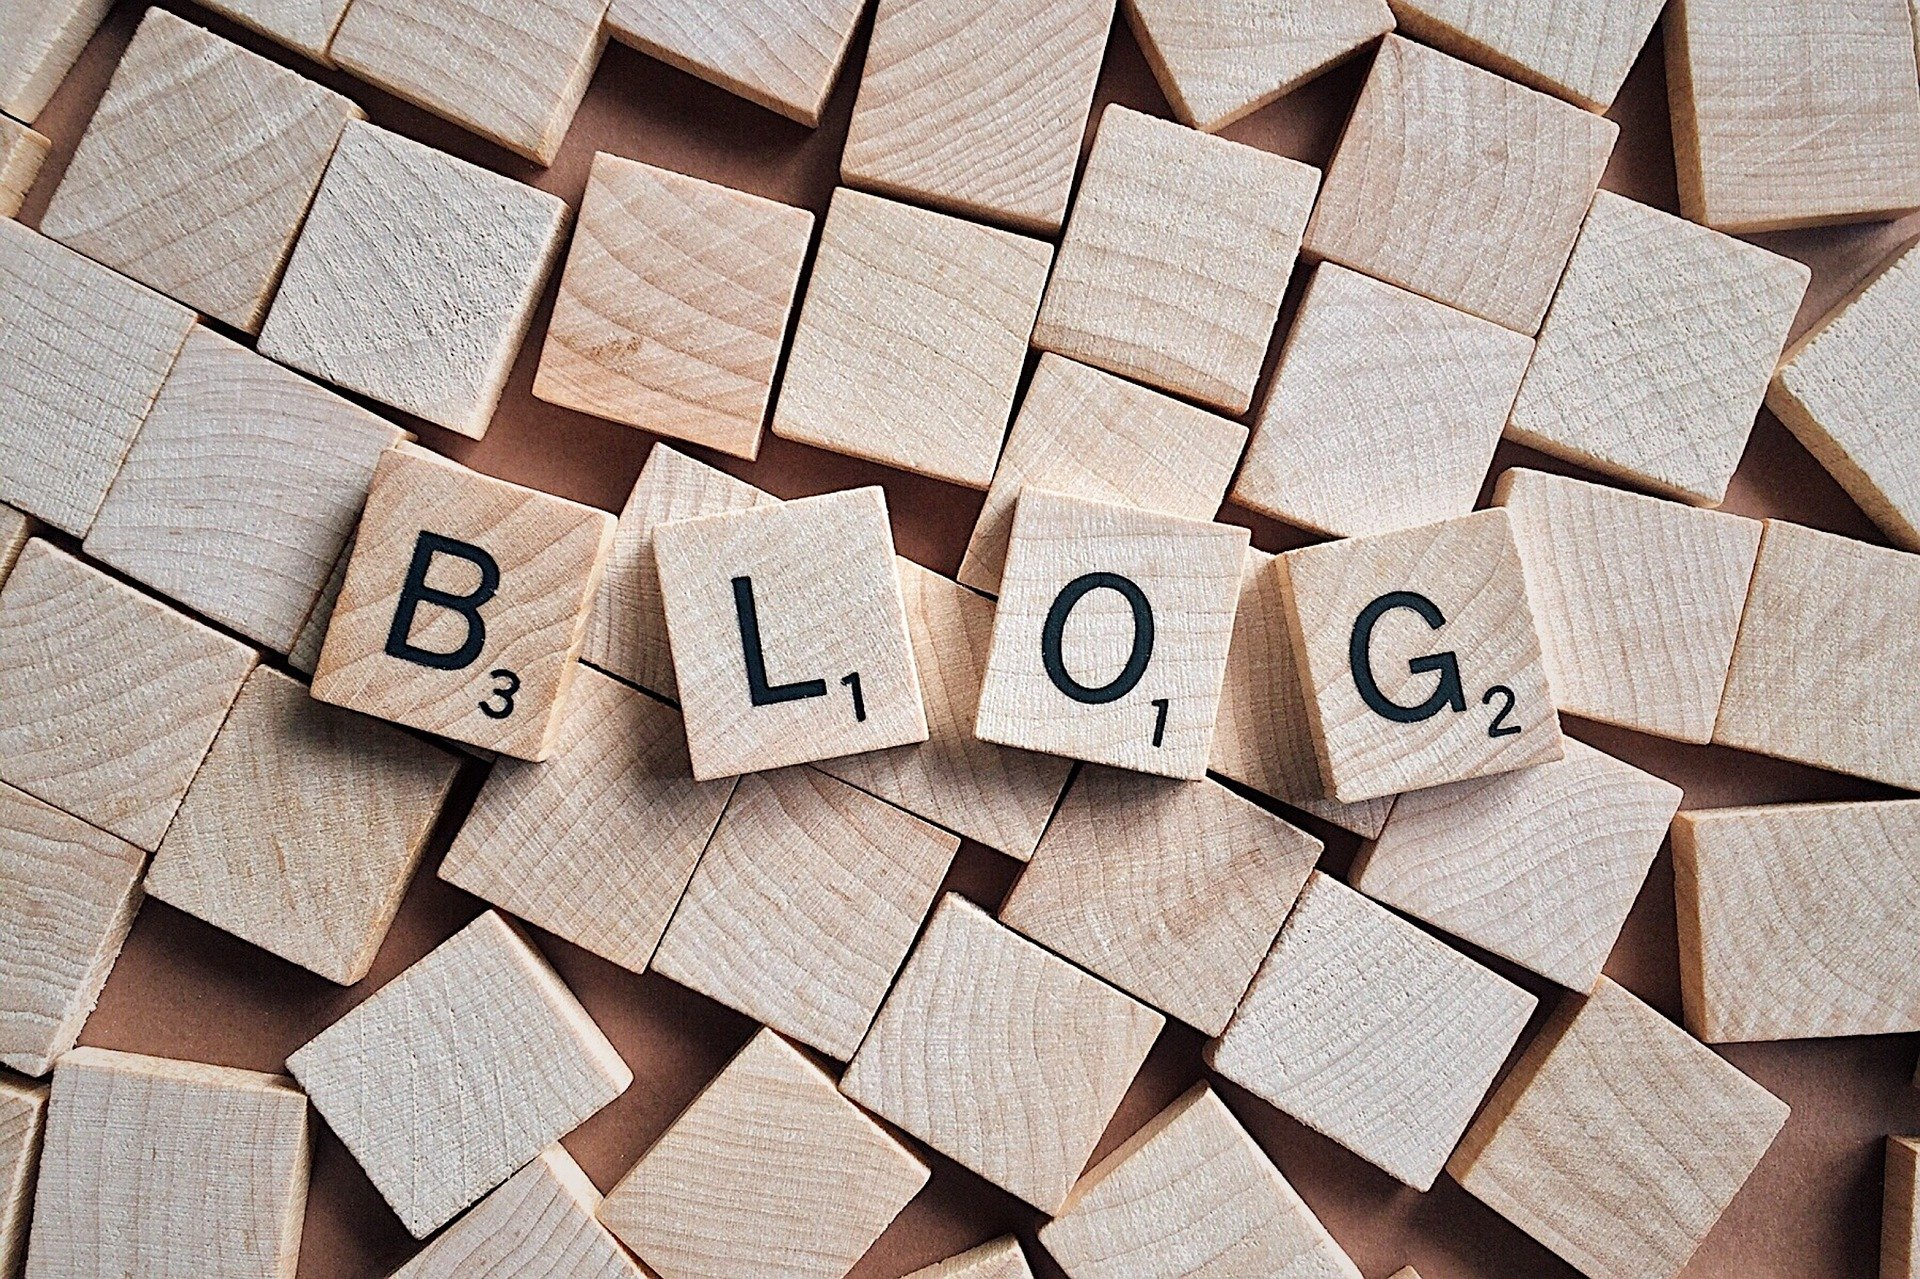 How Blogging Has Big Benefits For Small Businesses